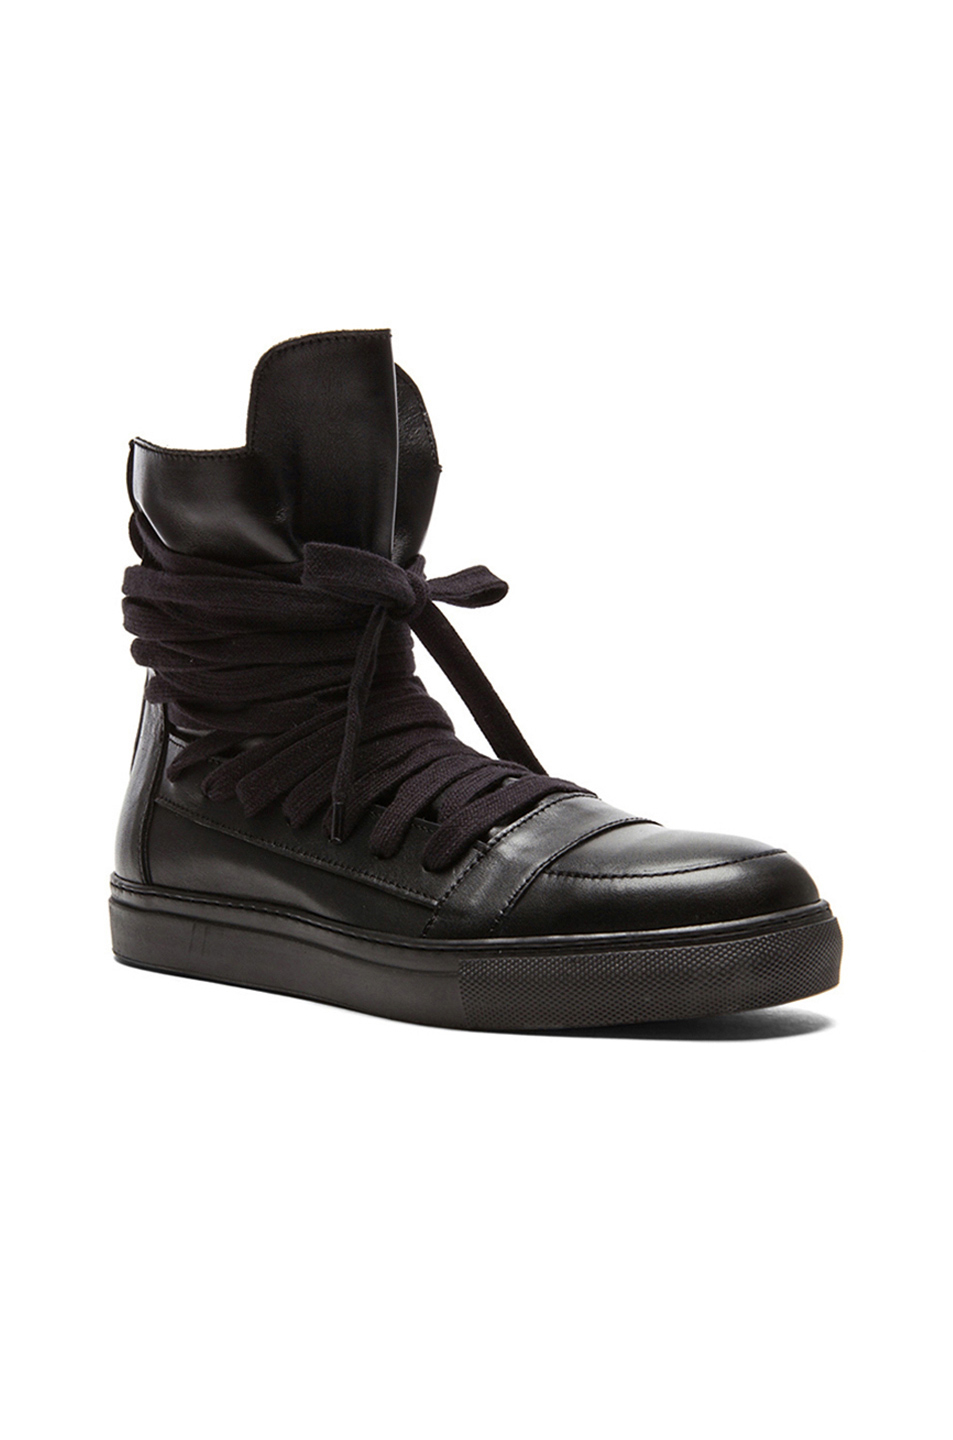 Pre-owned - Leather trainers Kris Van Assche KC10mZAYv